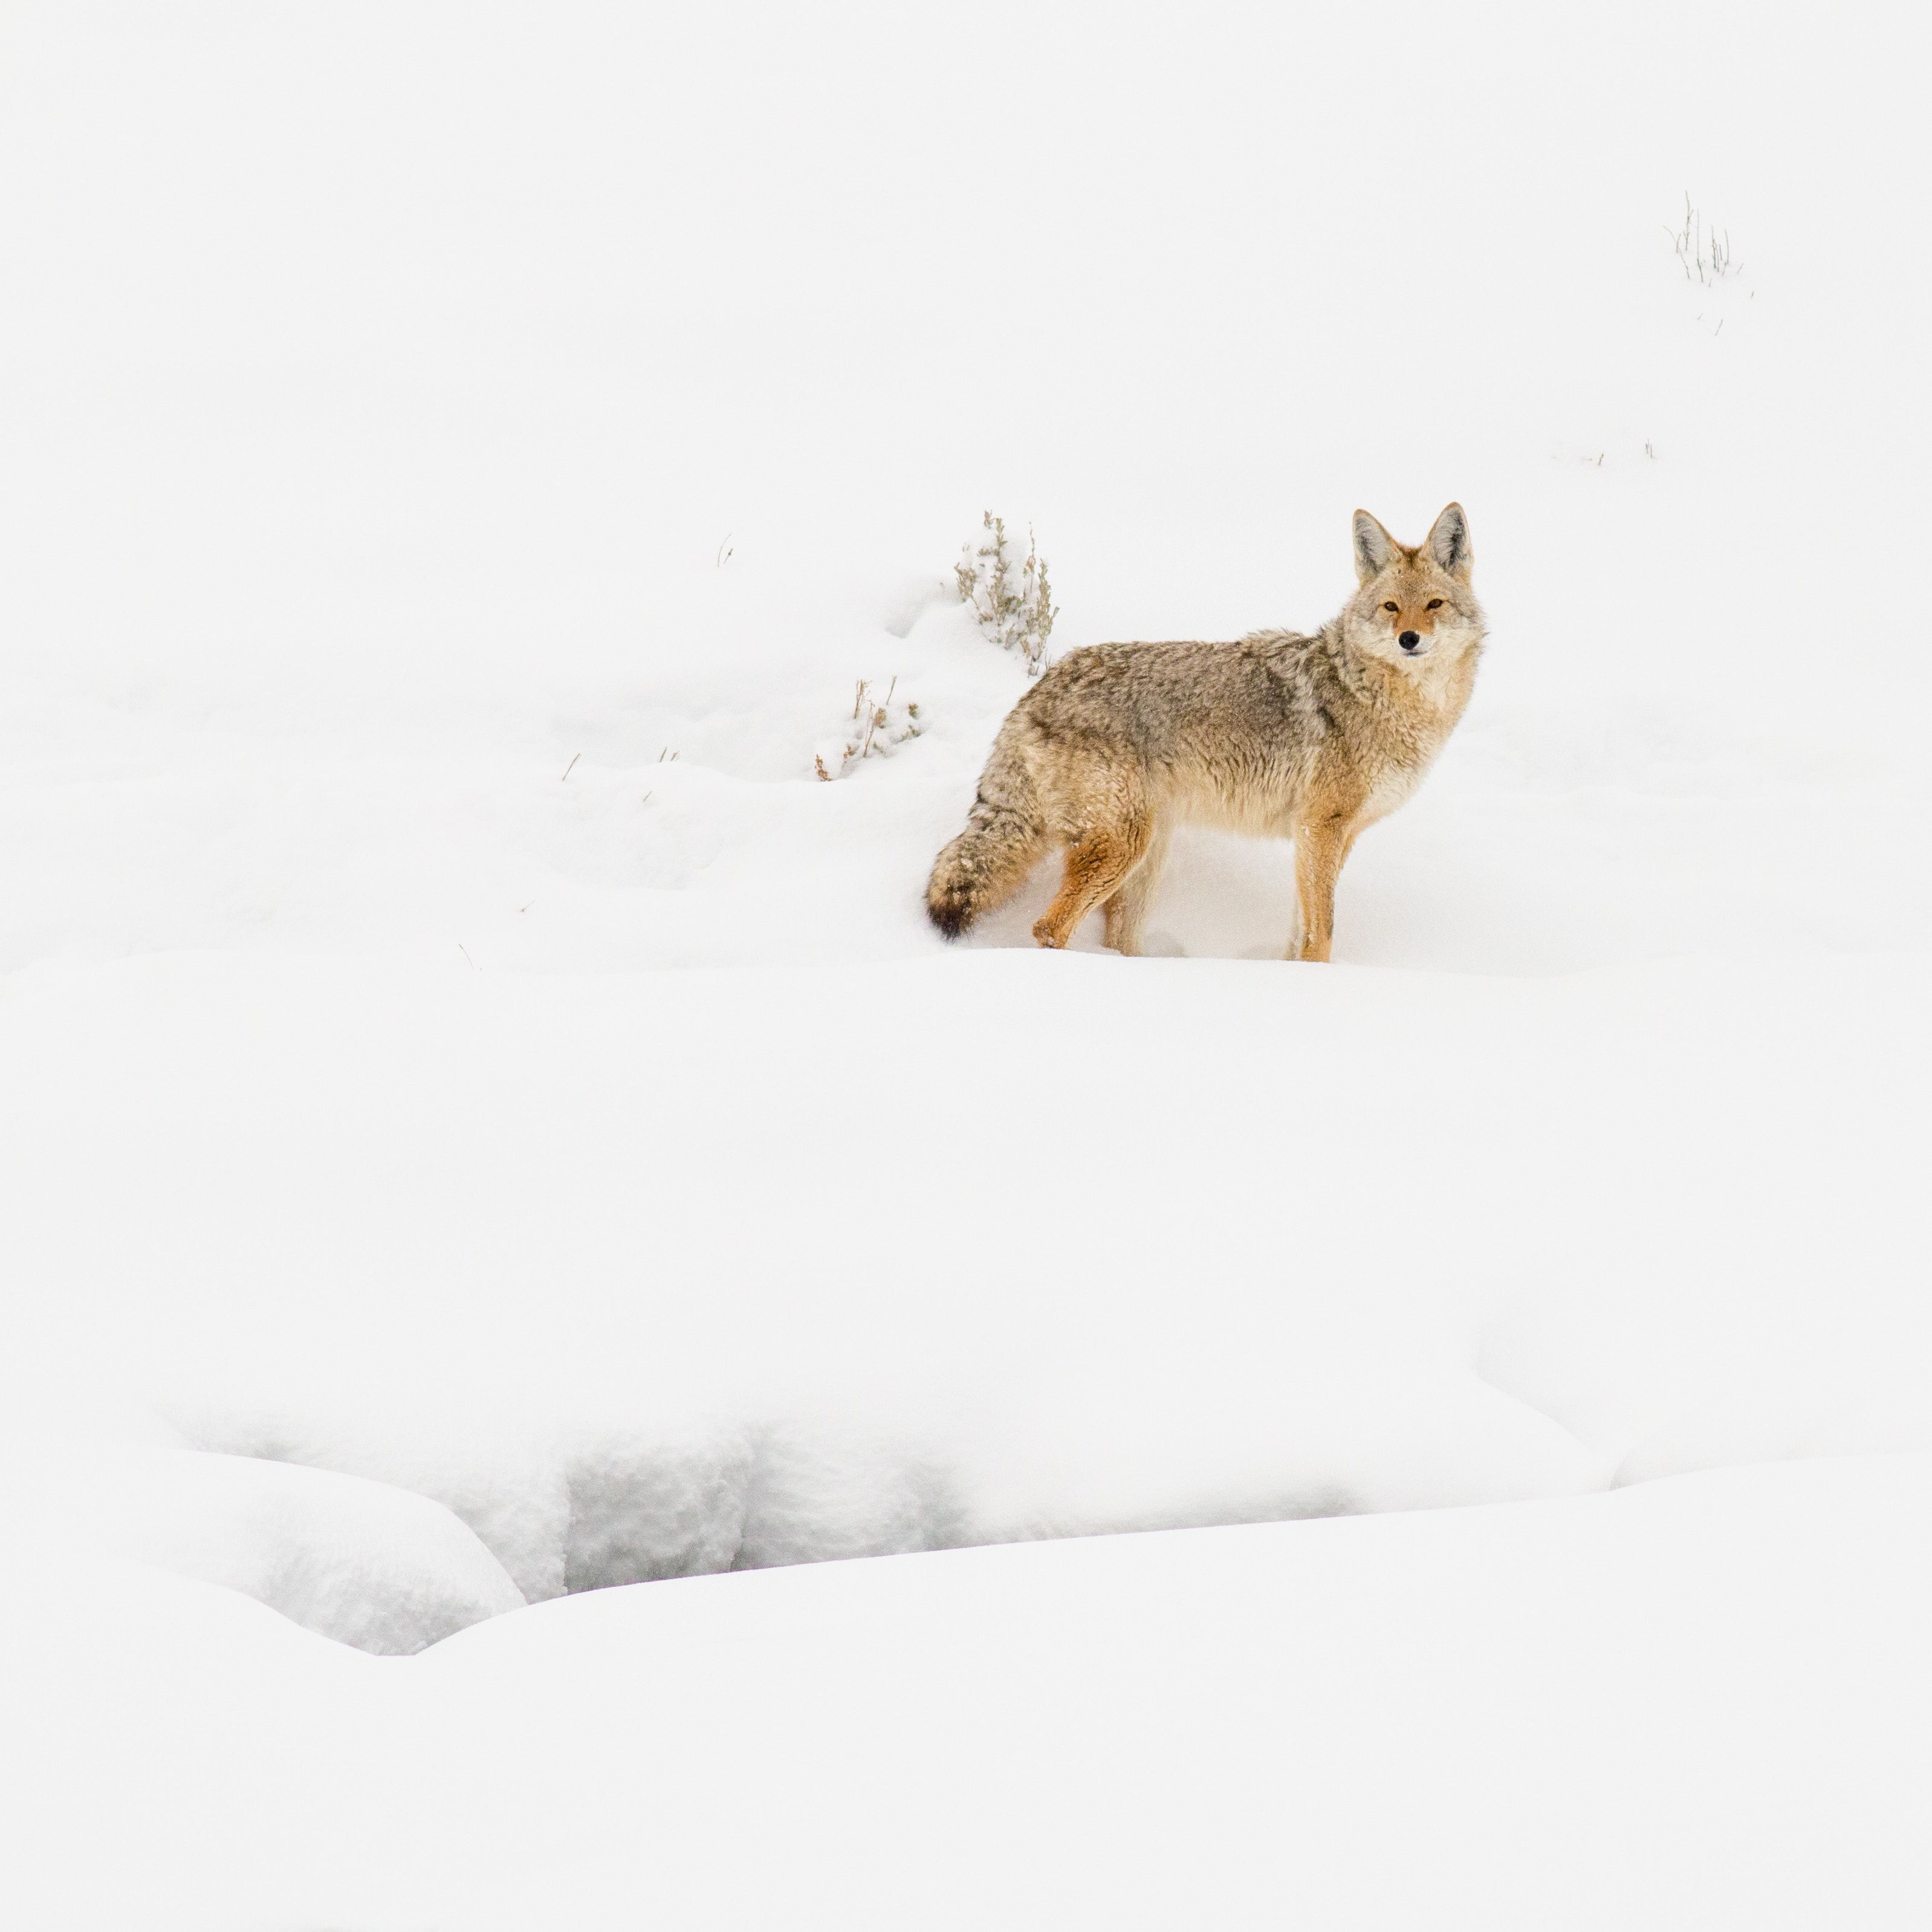 65125 download wallpaper Animals, Coyote, Beast, Snow, Winter, Wildlife screensavers and pictures for free